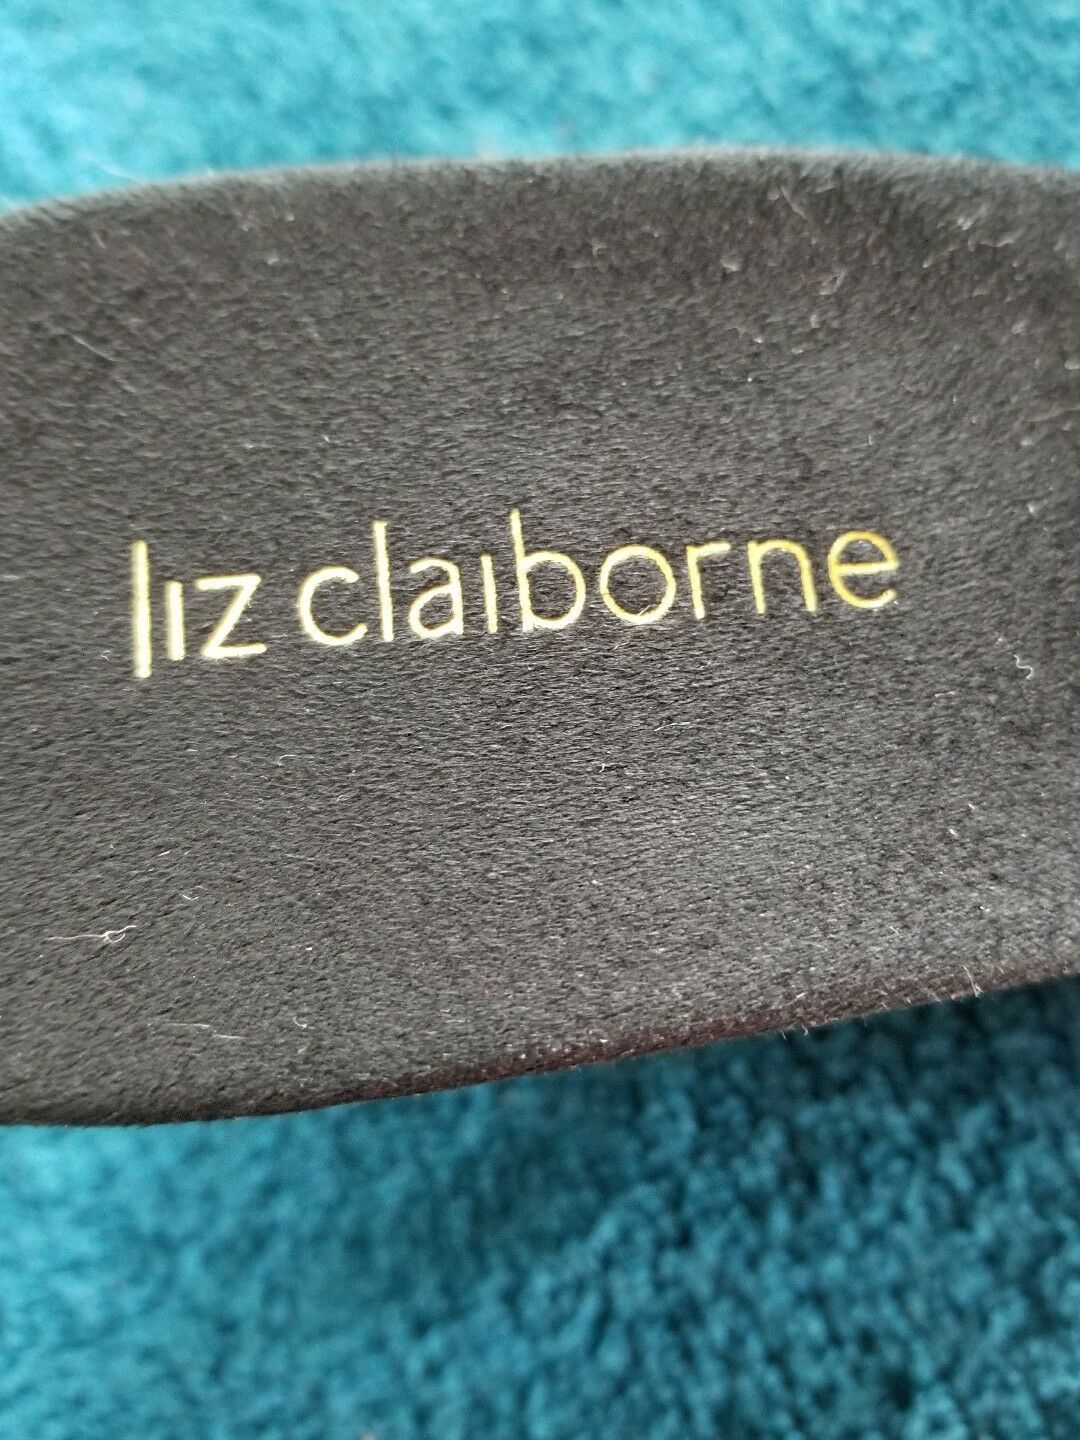 LIZ CLAIBORNE, LORA, SIZE 7.5, WEDGE, HEELED, SLIDE SANDALS, NEW